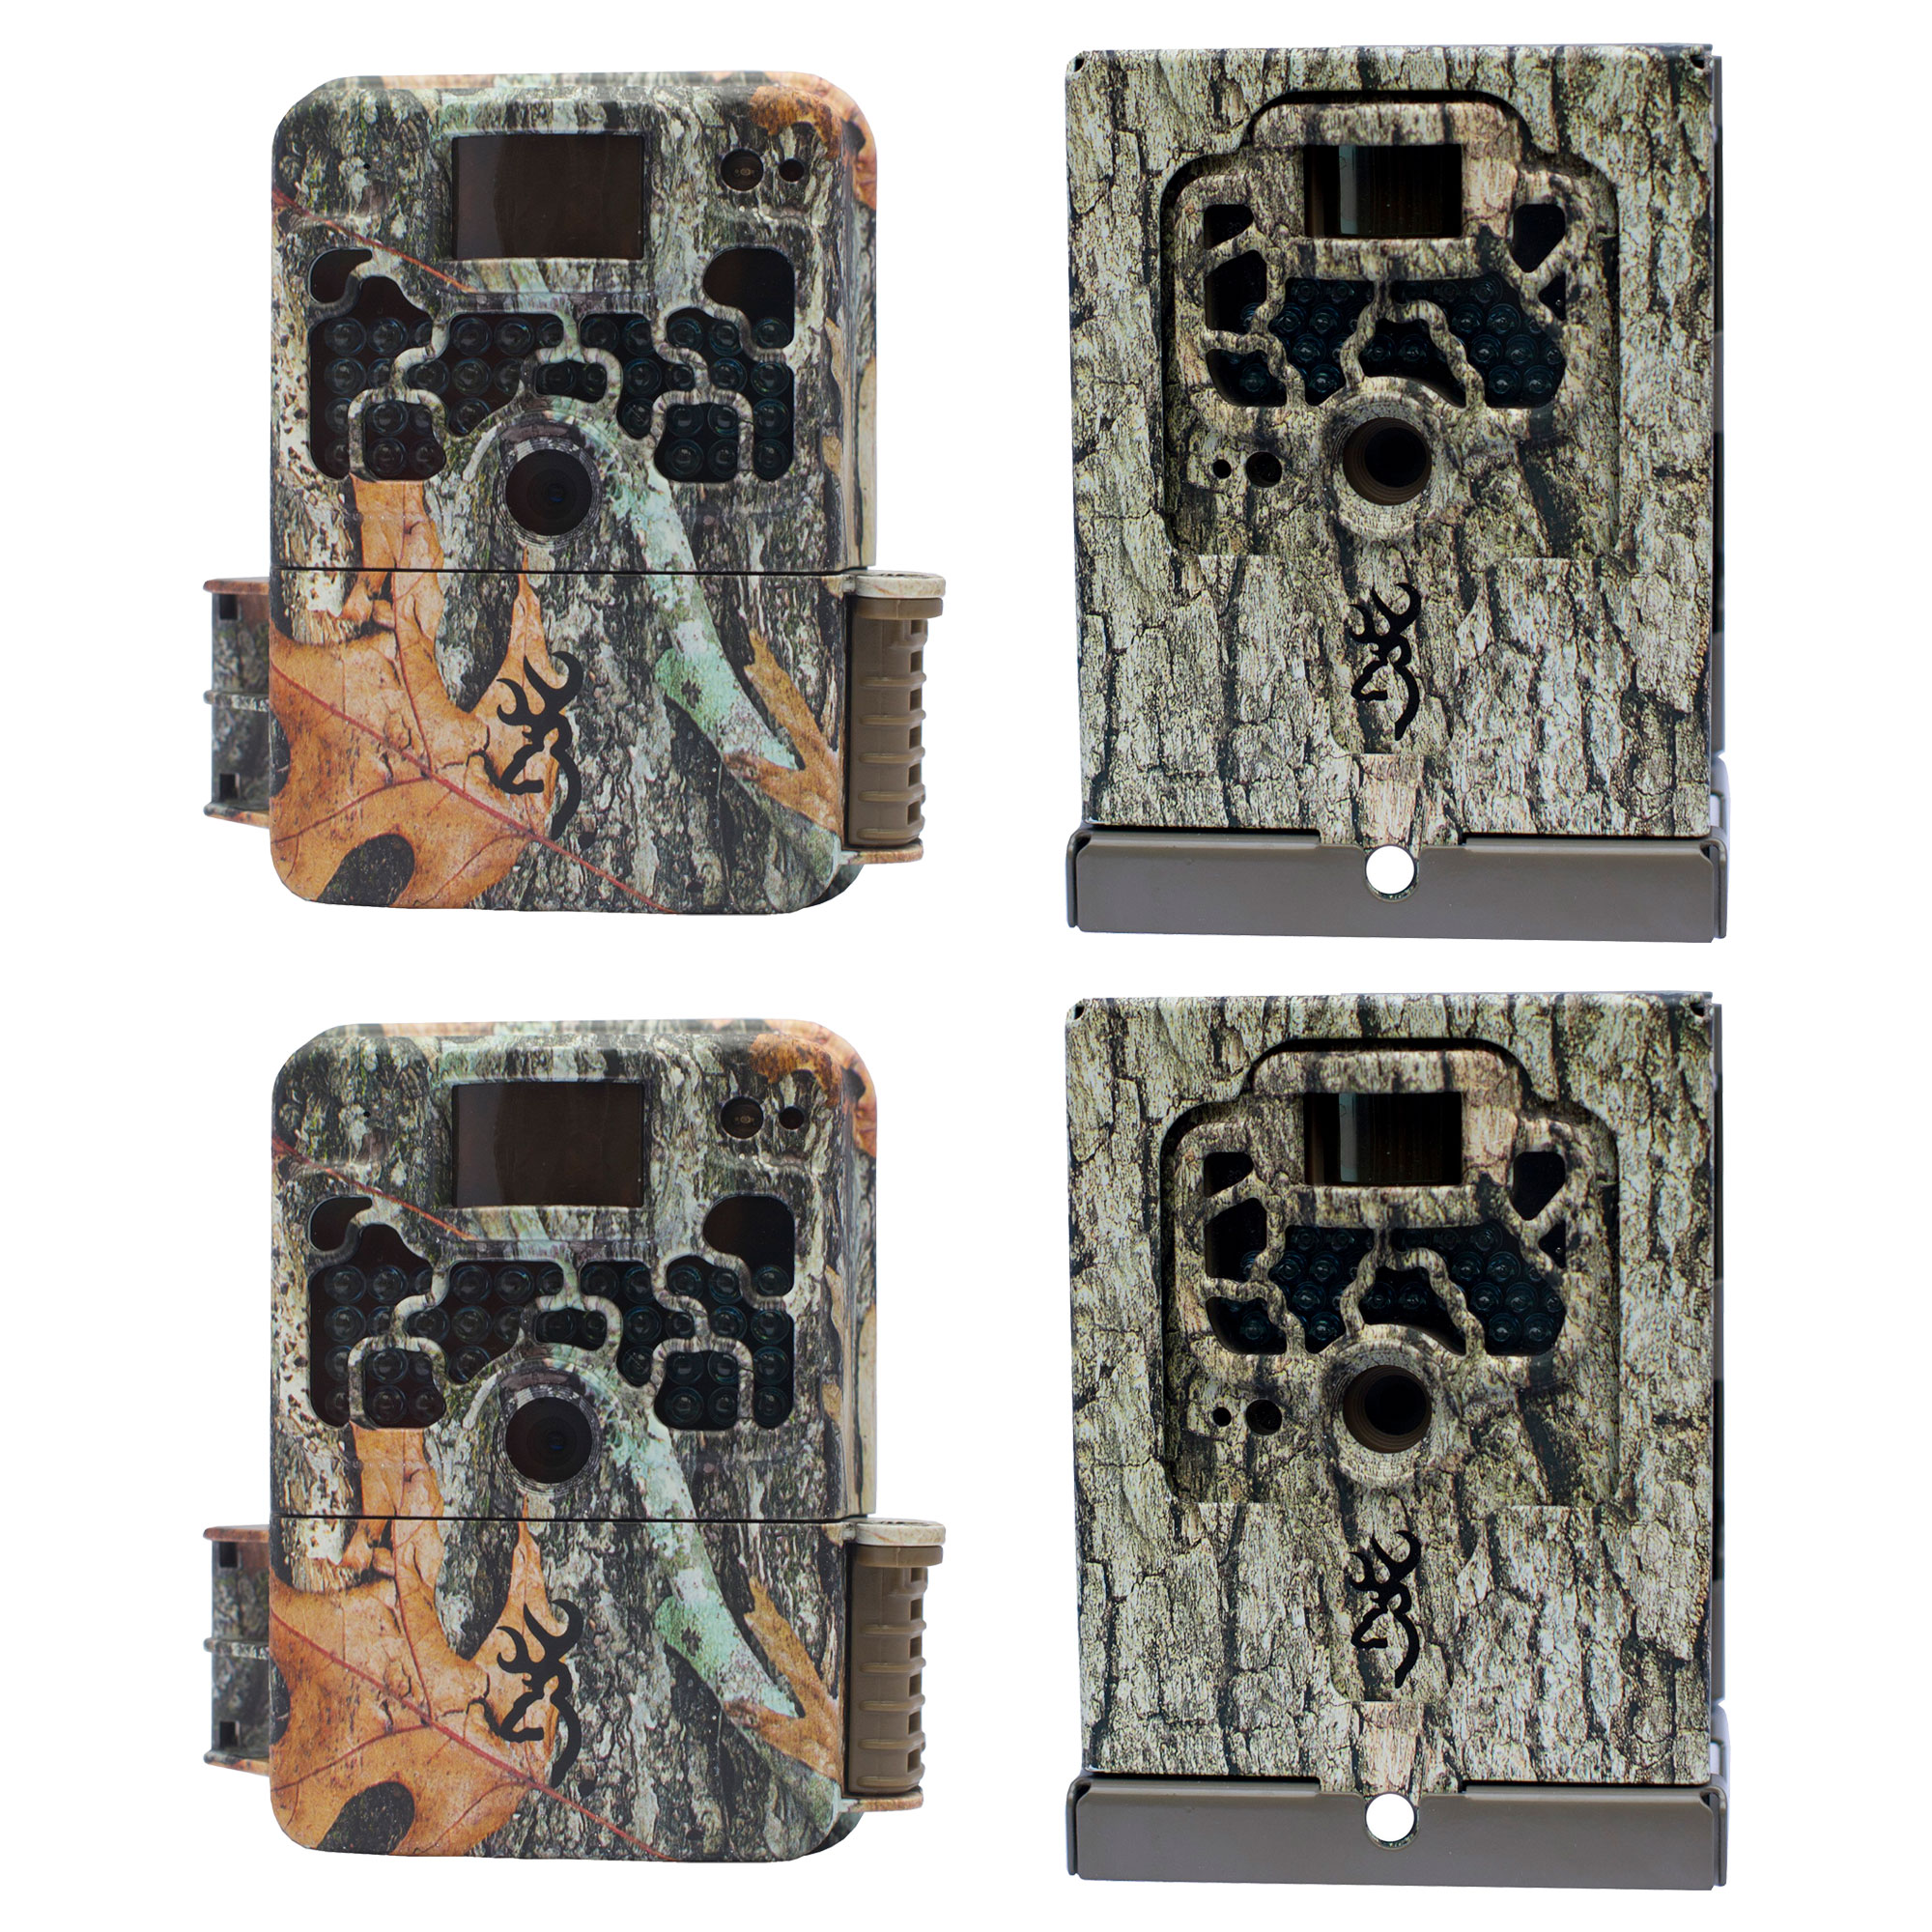 Browning Trail Cameras Strike Force 850 Game Camera (2 Pack) with Security Boxes by Browning Trail Cameras